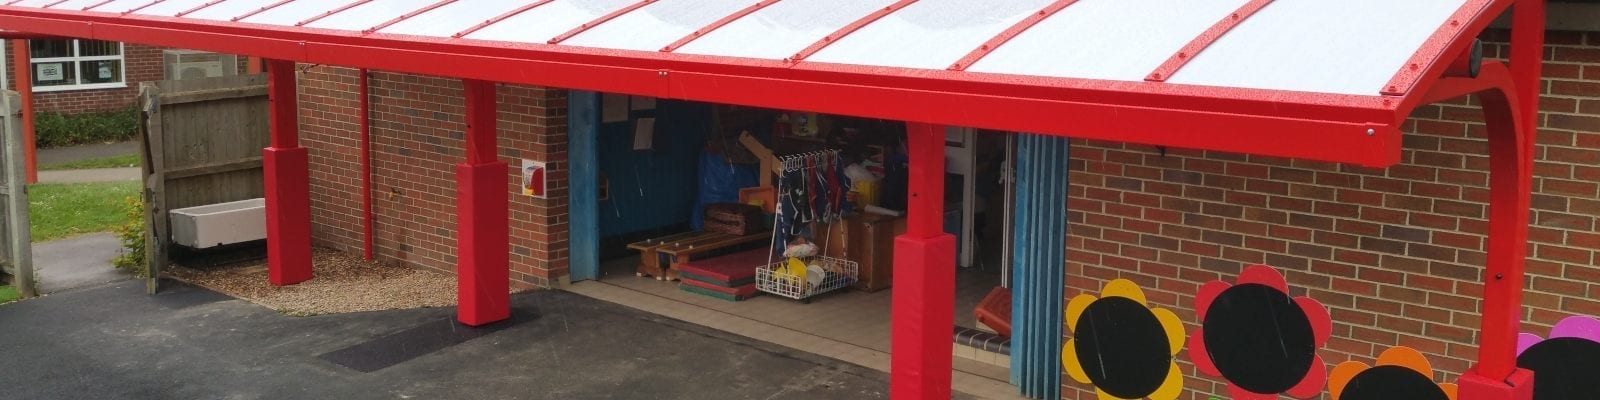 Cantilever shelter we installed at Shelton Infants School